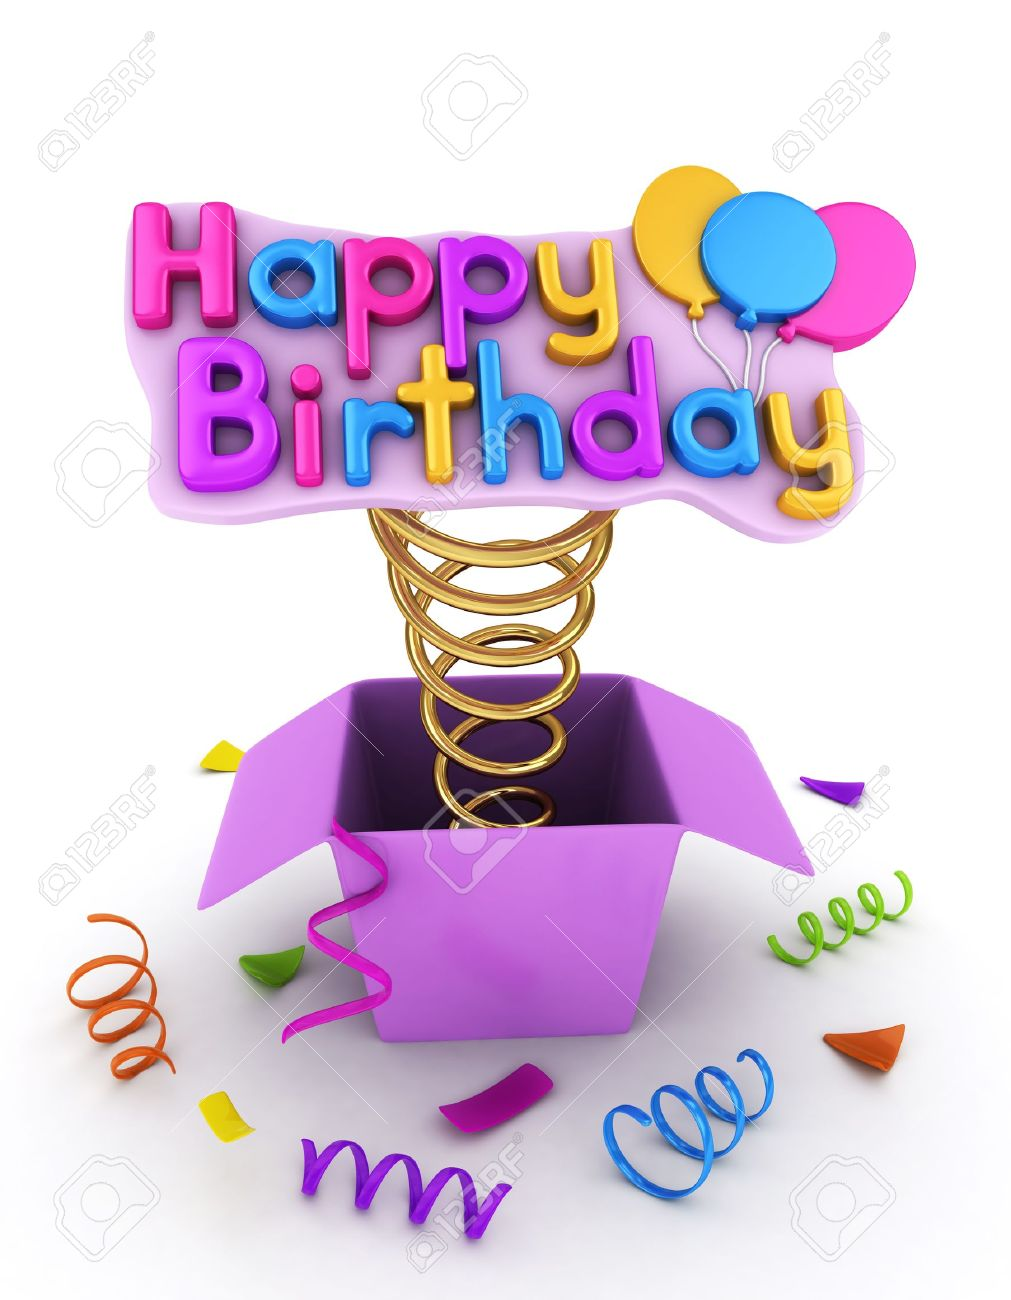 3d Illustration Of A Gift Box With A Pop Up Happy Birthday Message